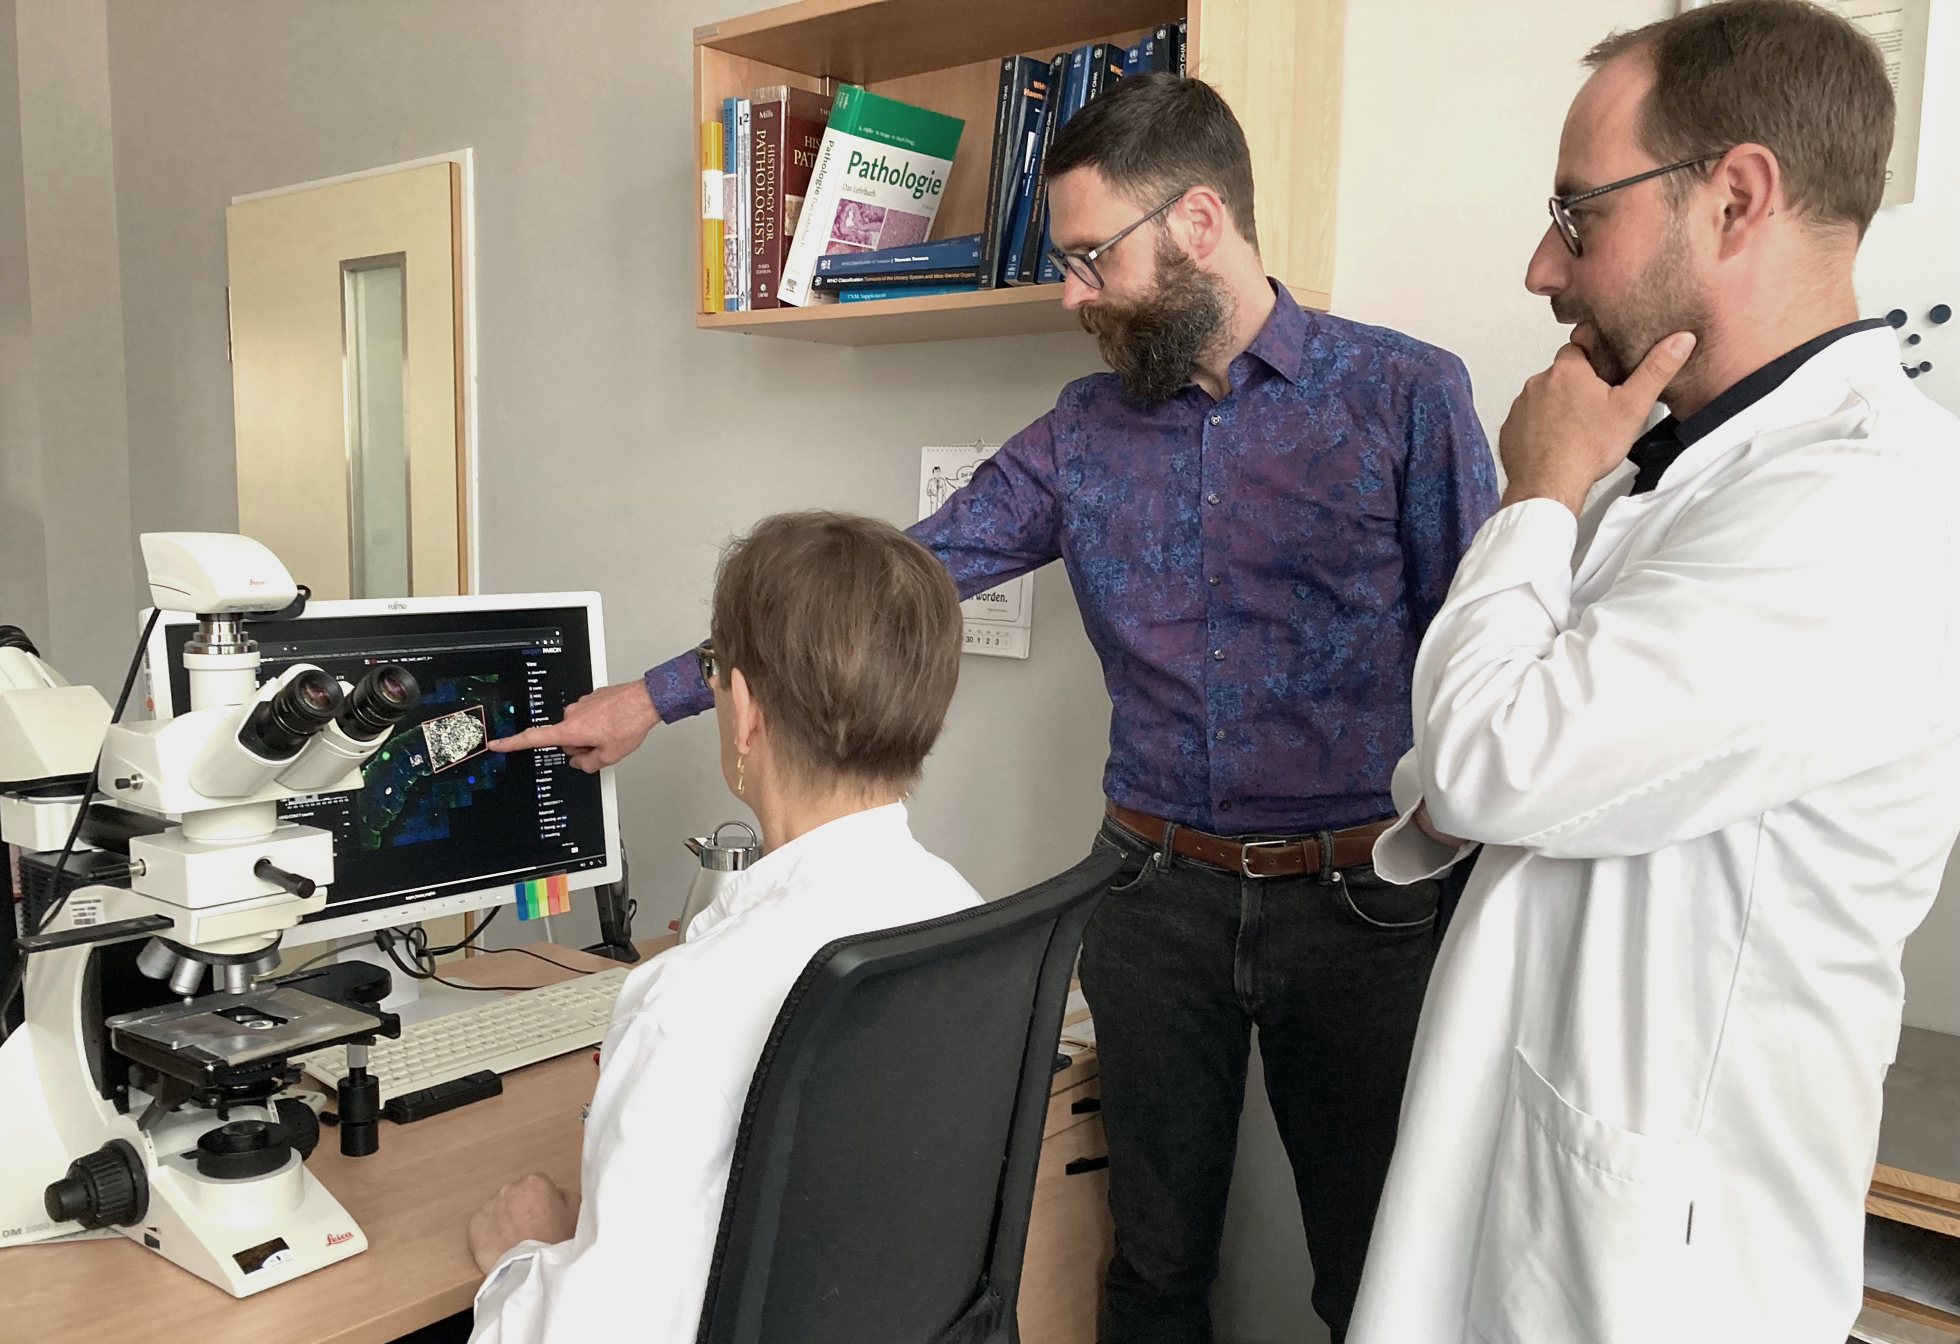 The run continues: AI-based software system for pathology in testing phase & professorship for Clinical AI at EKFZ